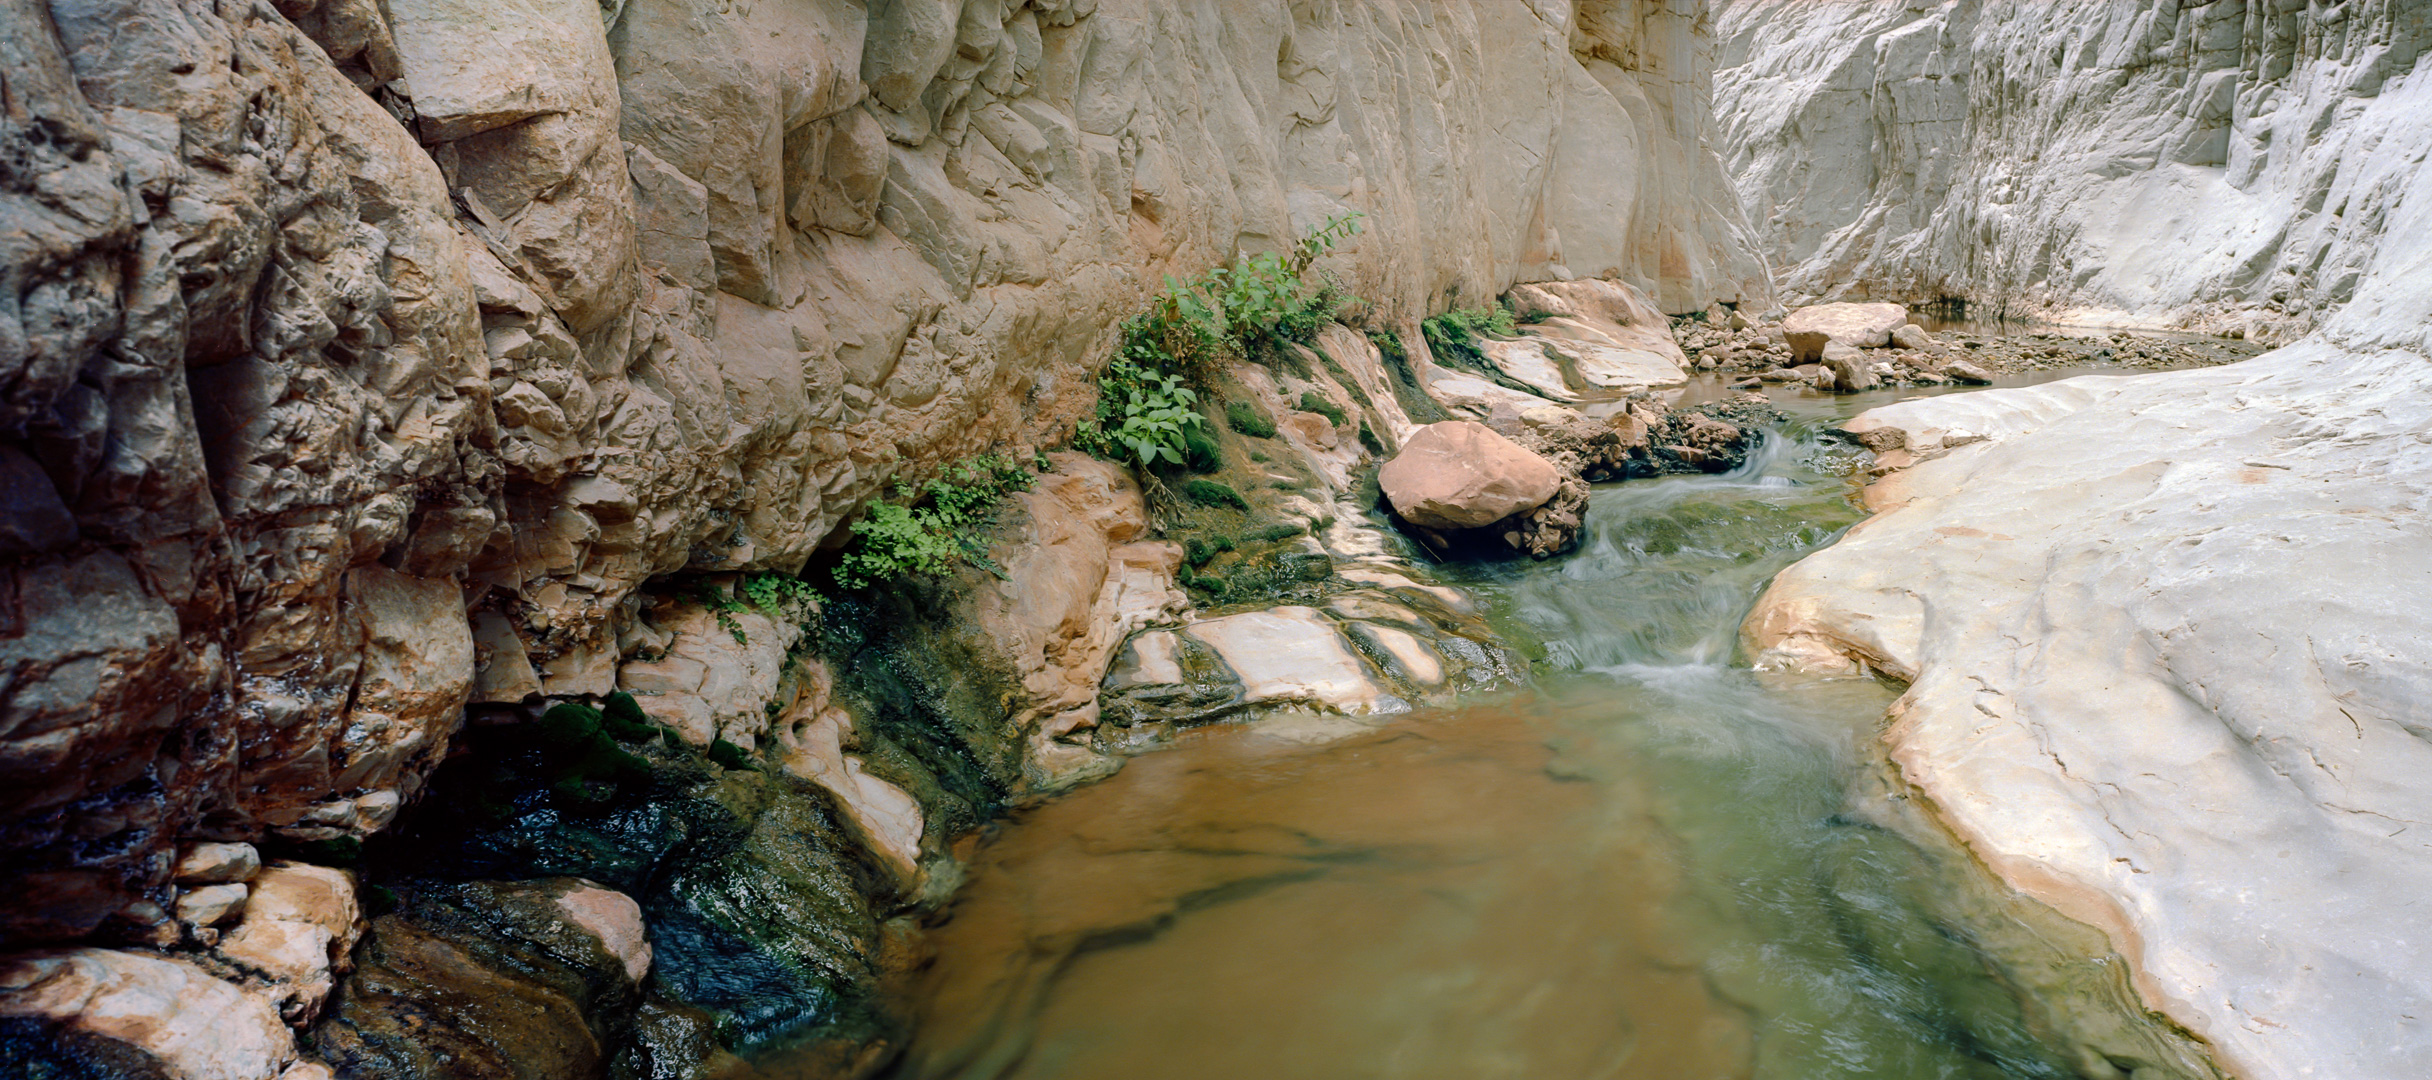 Stream in Scotty's Hollow. Ektar 100, 1/2, f/18.